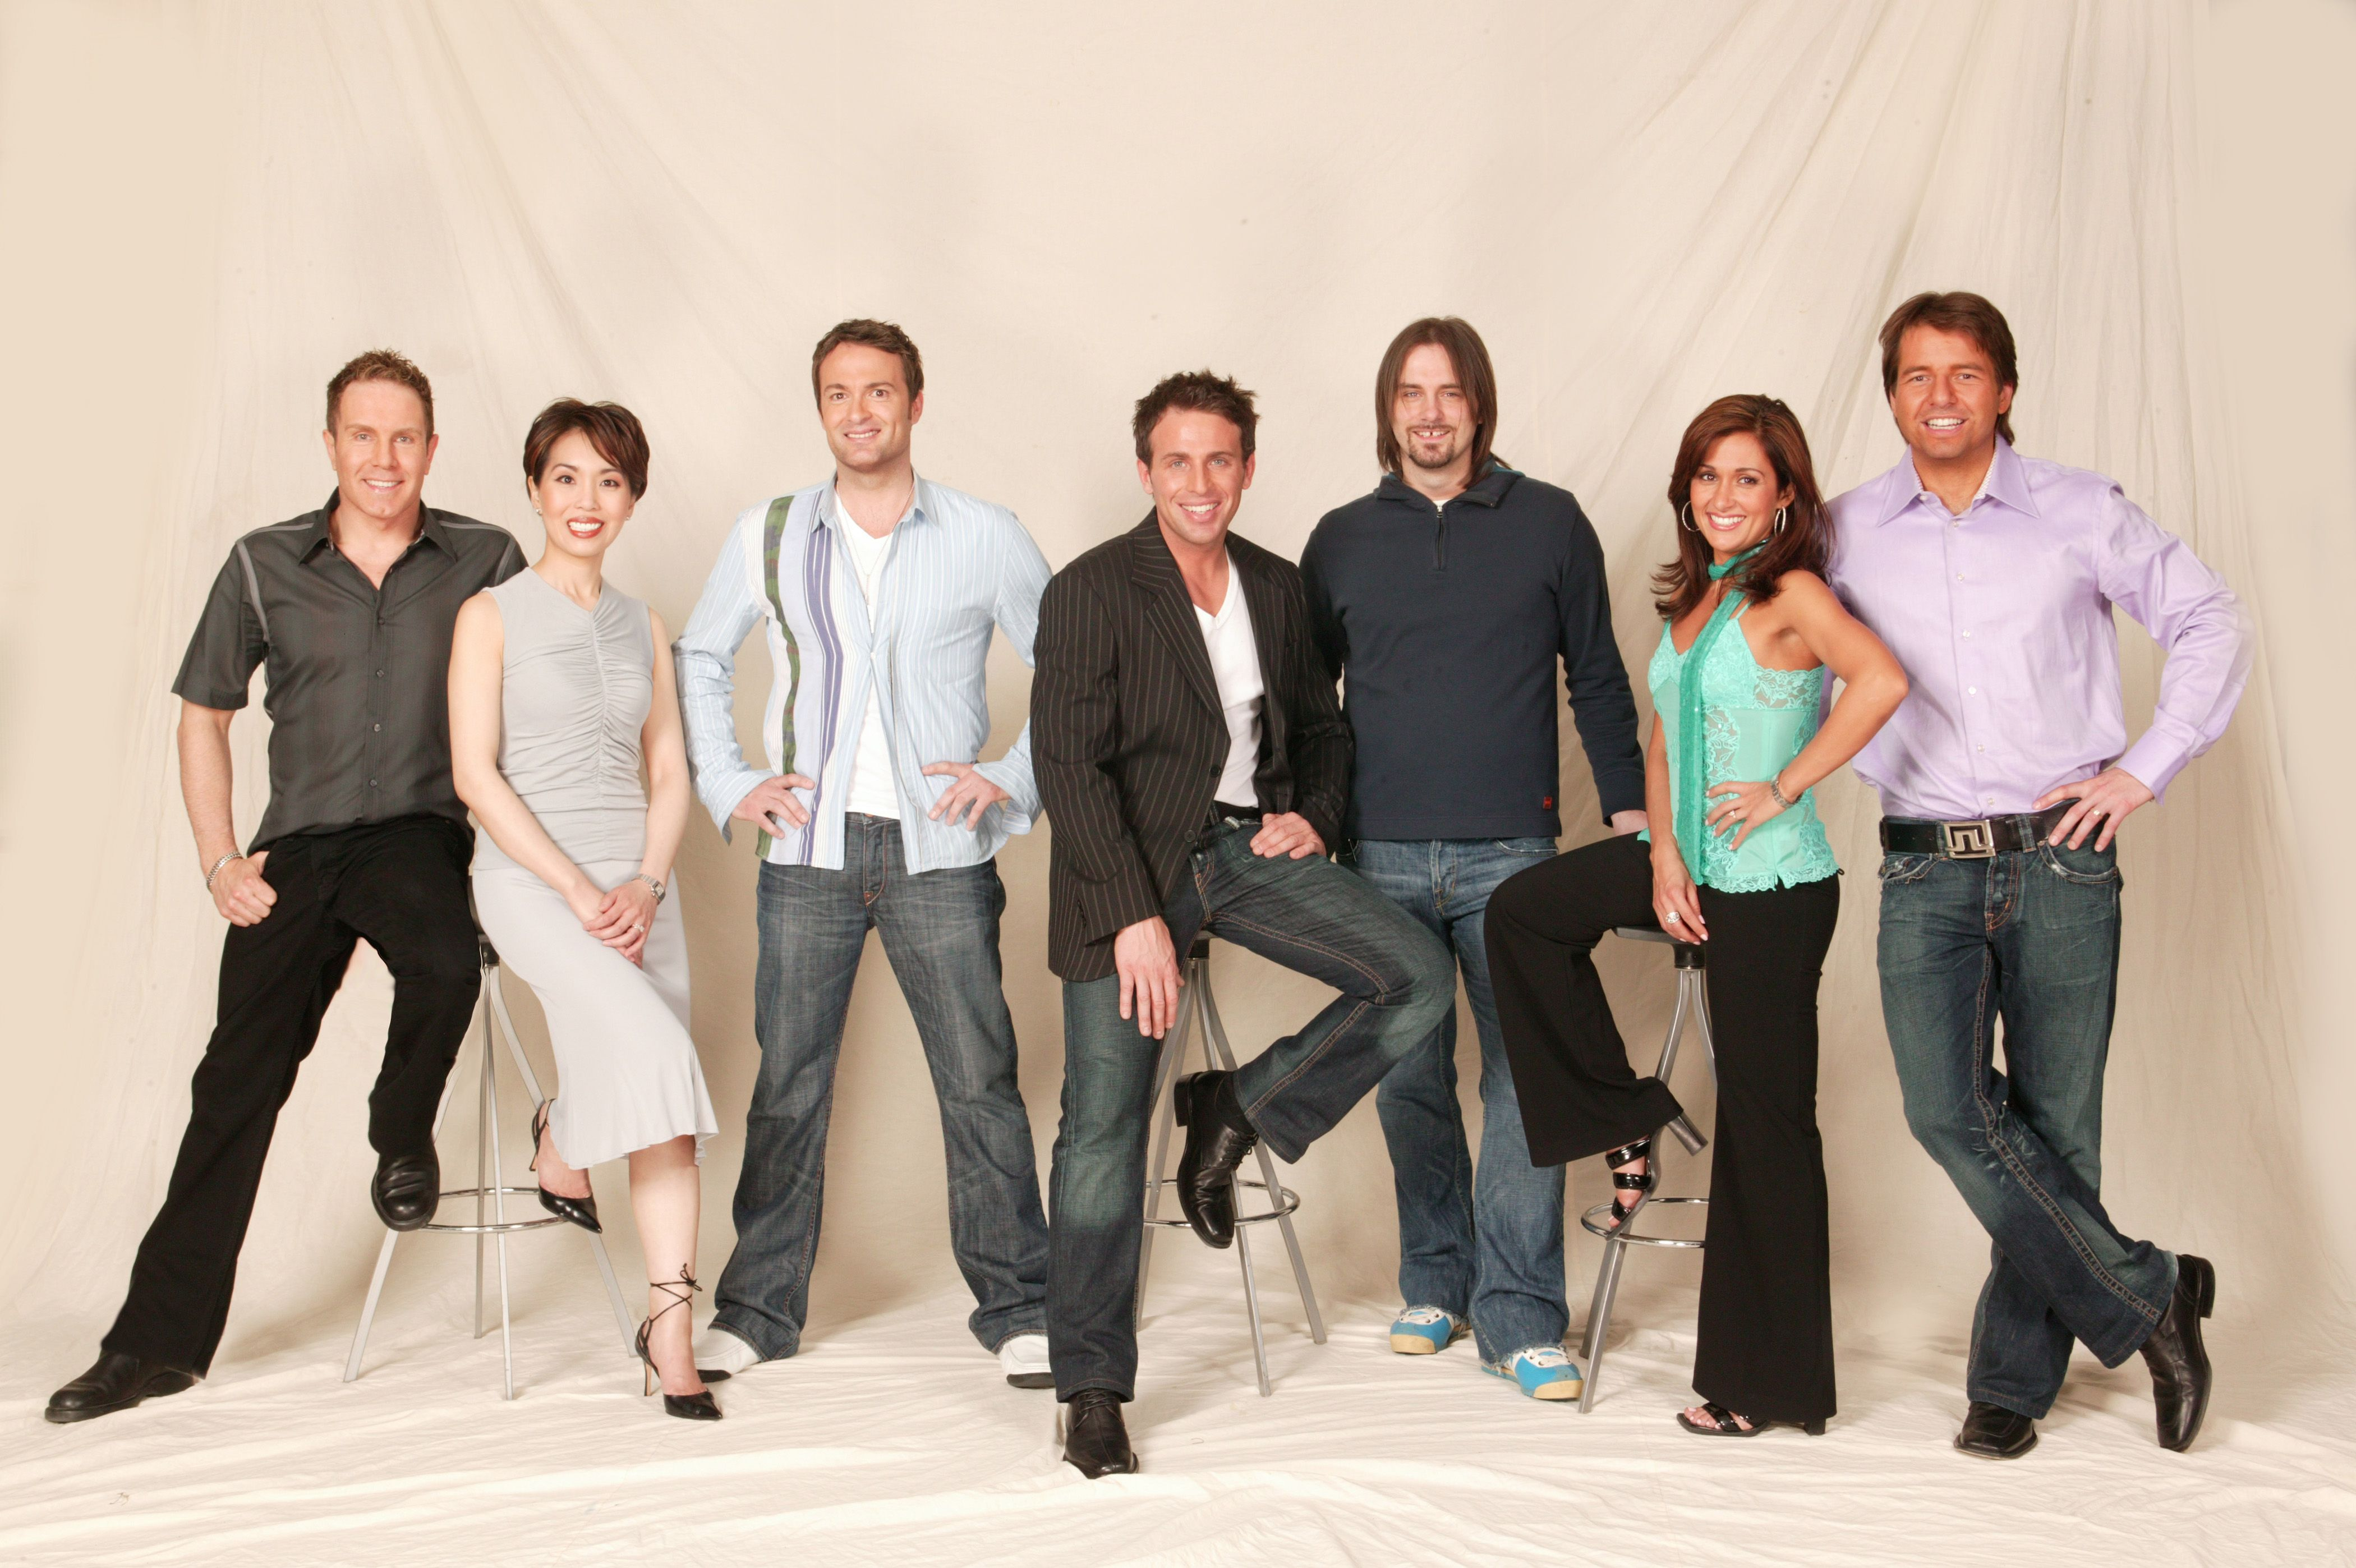 Makeover Shows stylejury' hands down the best makeover show on tv, at this